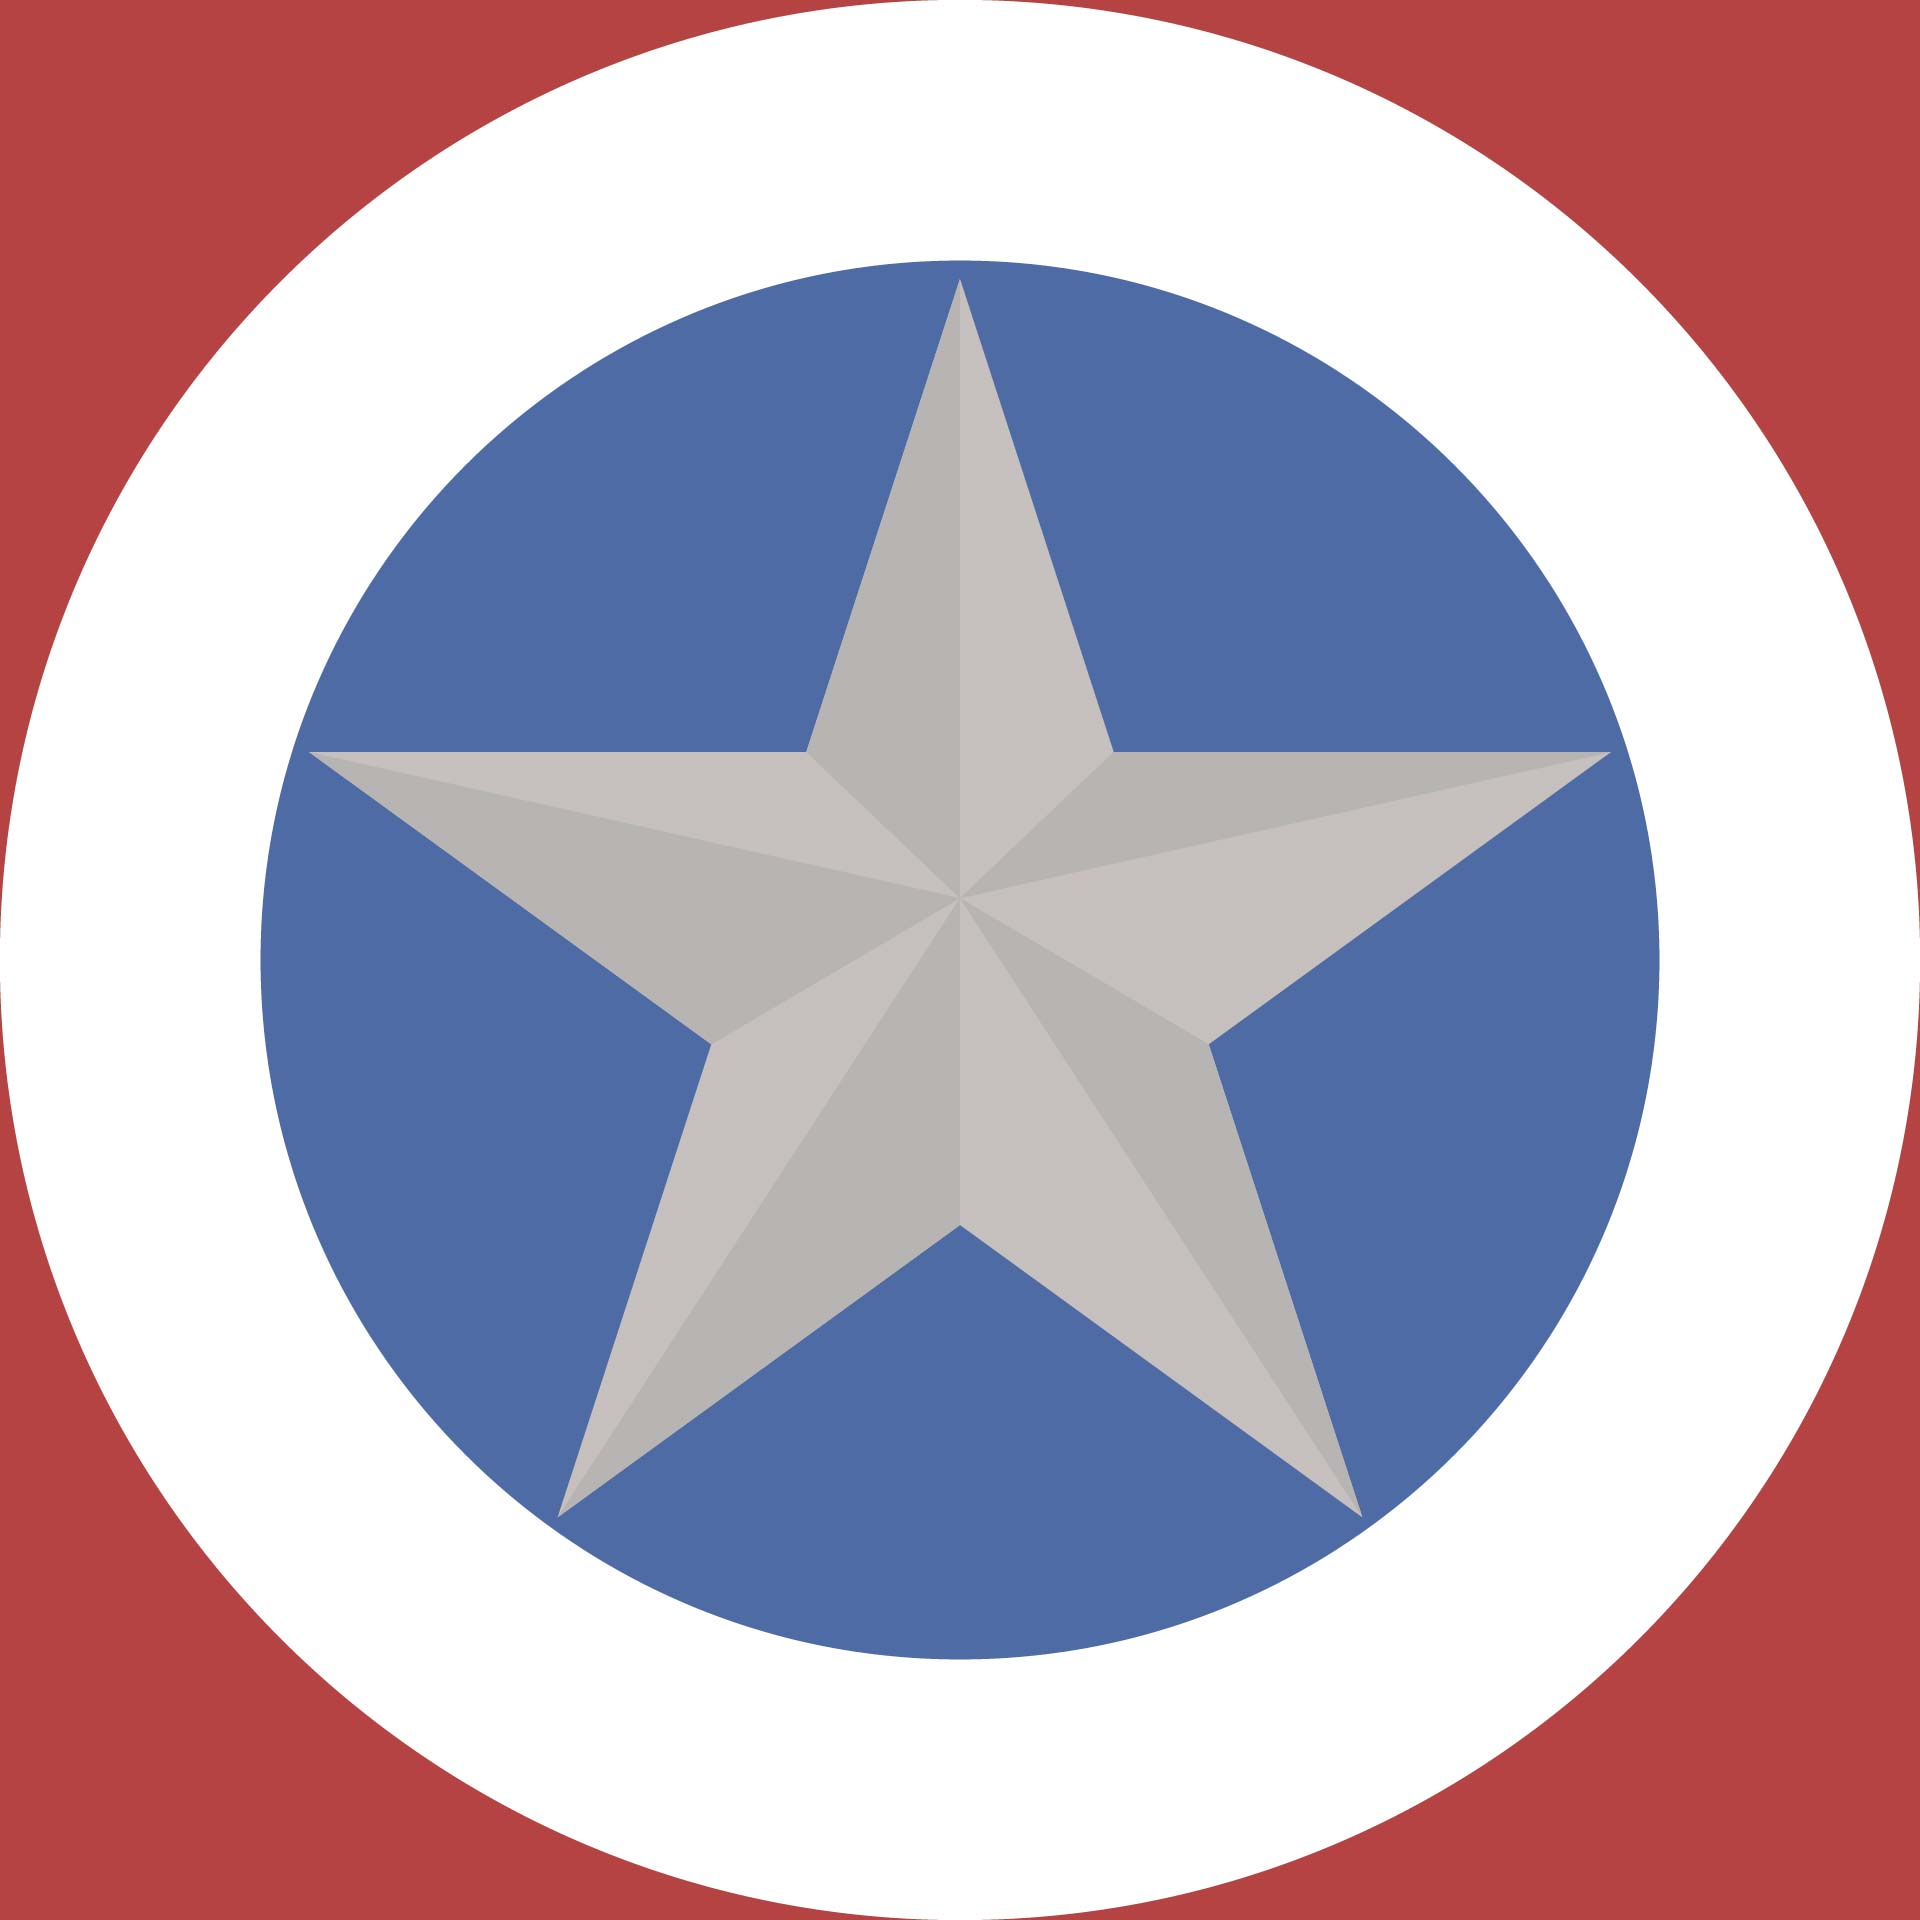 5 Inch Star Template Printable